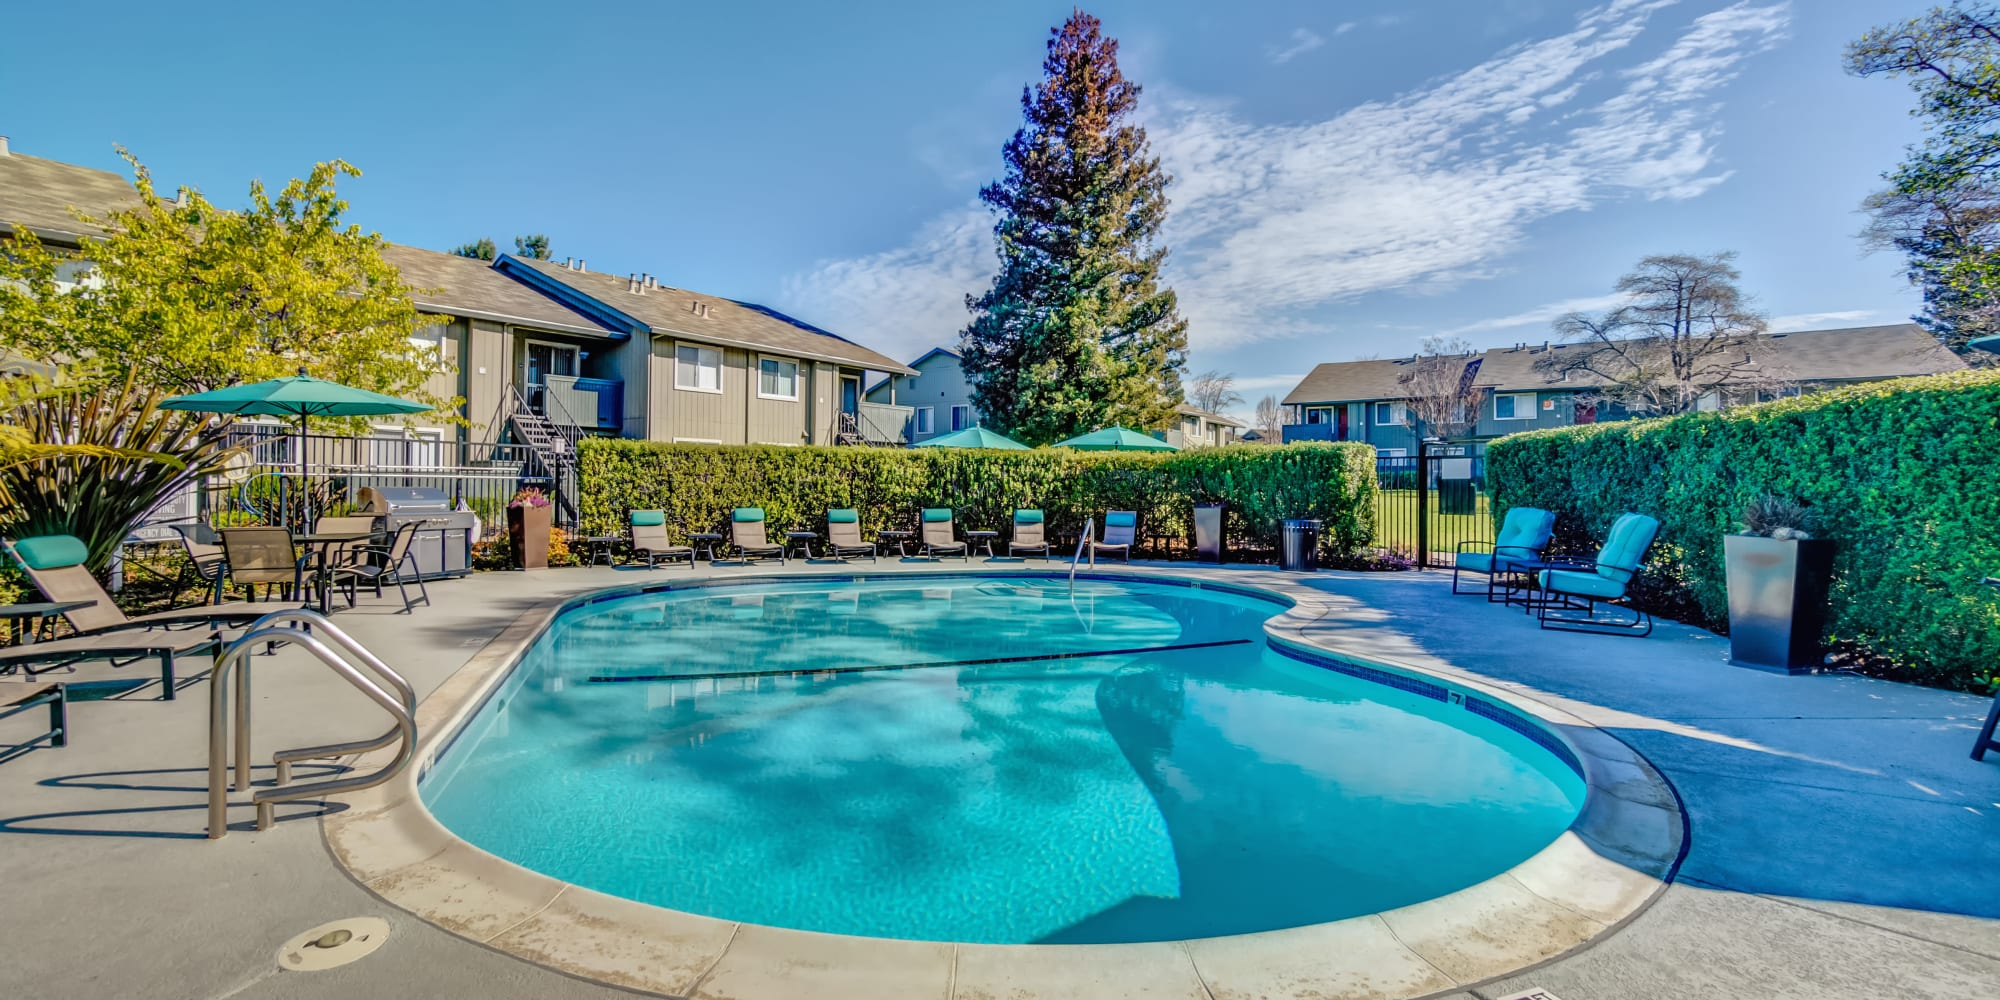 Apartments at Vue Fremont in Fremont, California